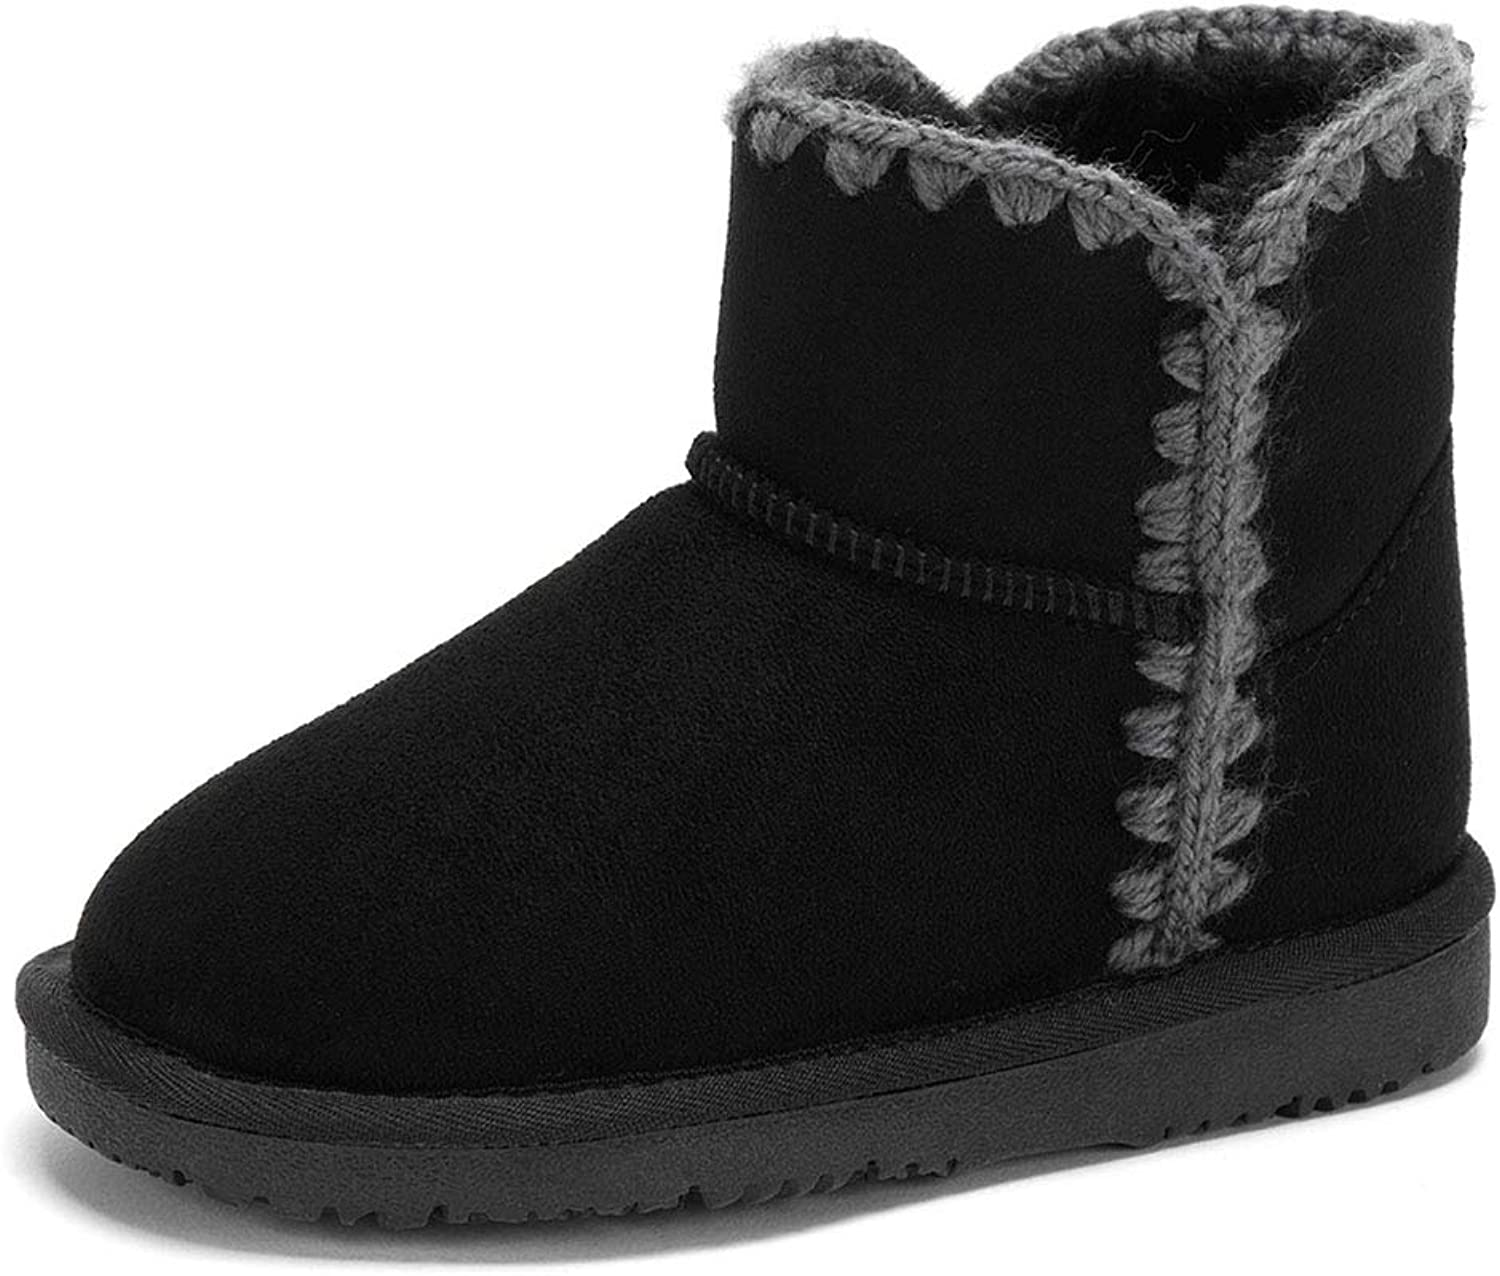 Woven Side Plush Solid color Snow Boots Girl Short Boots Outdoor Sports shoes Casual shoes Suitable All Clothes shoes & Handbags (color   Black, Size   32)